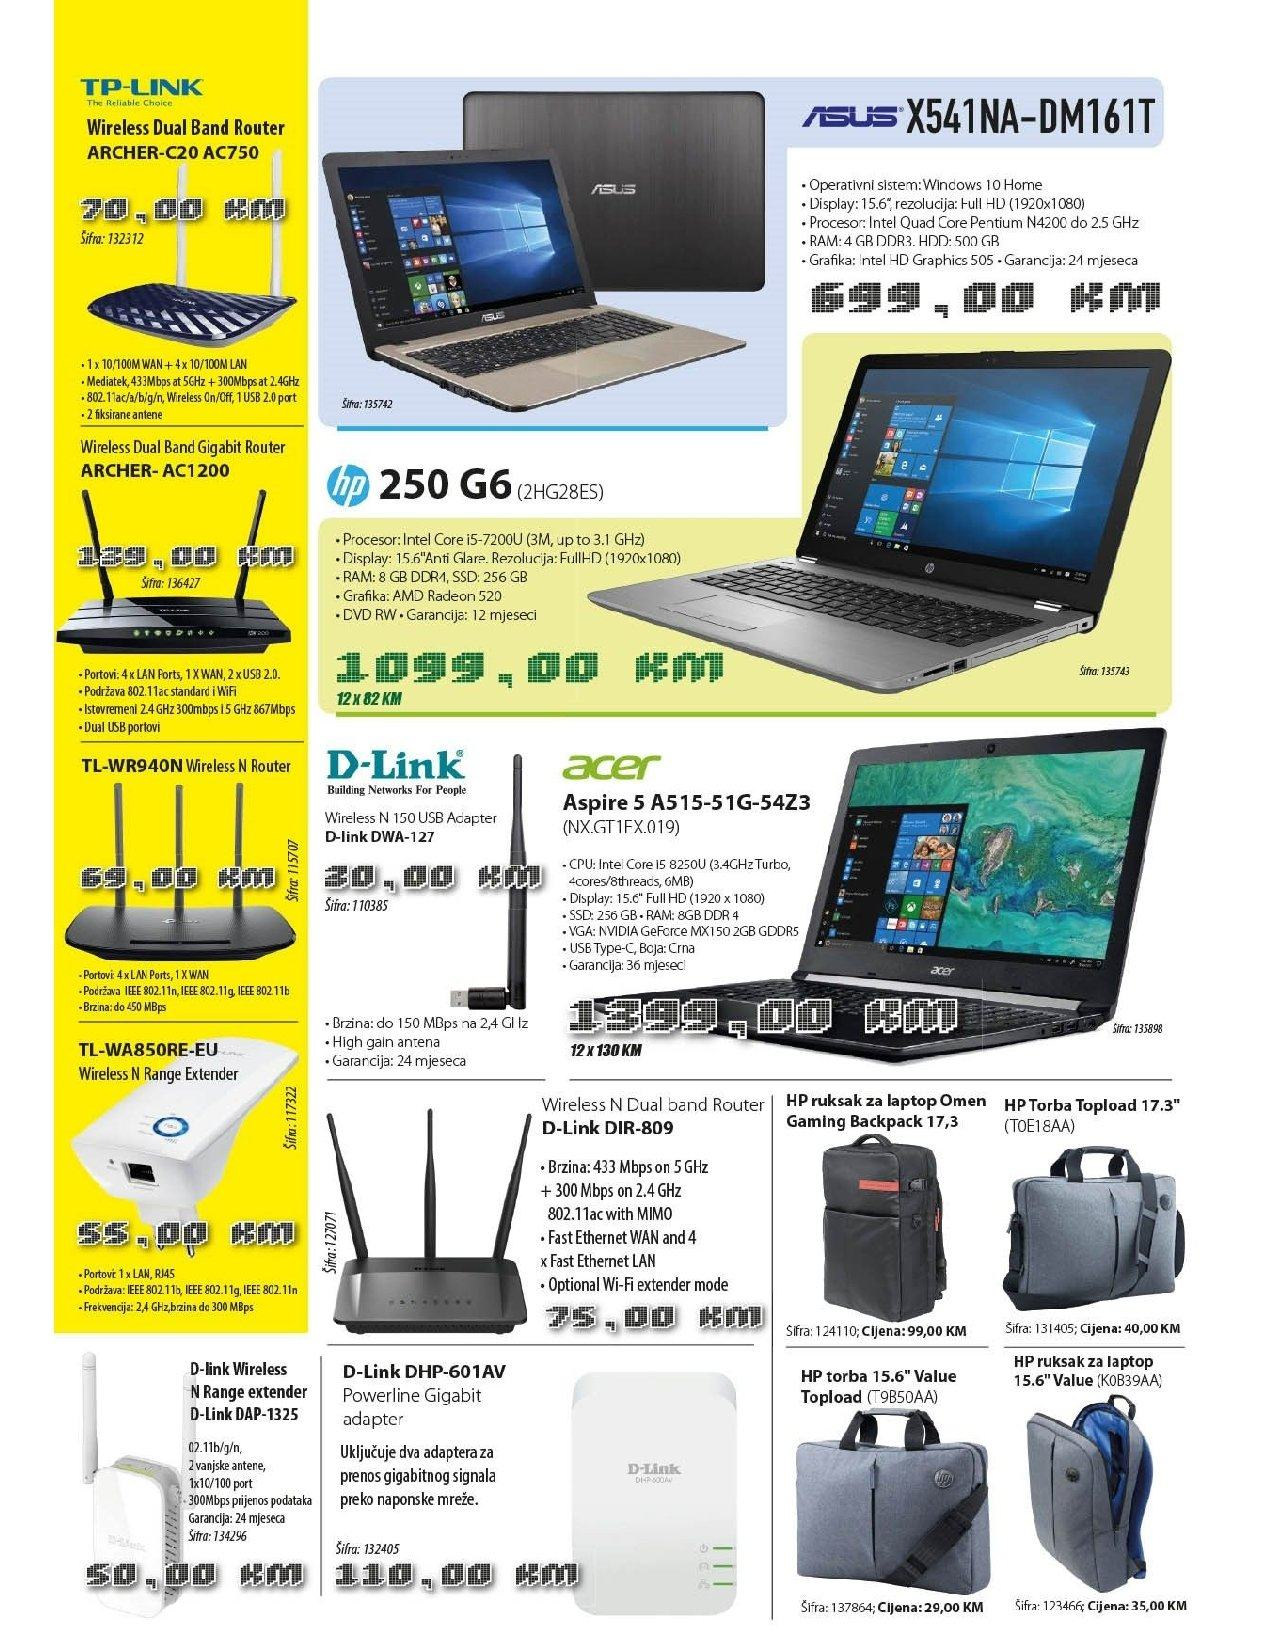 Imtec katalog - 01.08.2018. - 30.09.2018. - Sniženi proizvodi - adapter, amd, asus, d-link, full hd, hewlett packard, intel, intel core, laptop, procesor, ruksak za laptop, torba, tp-link, windows, nvidia. Stranica 3.